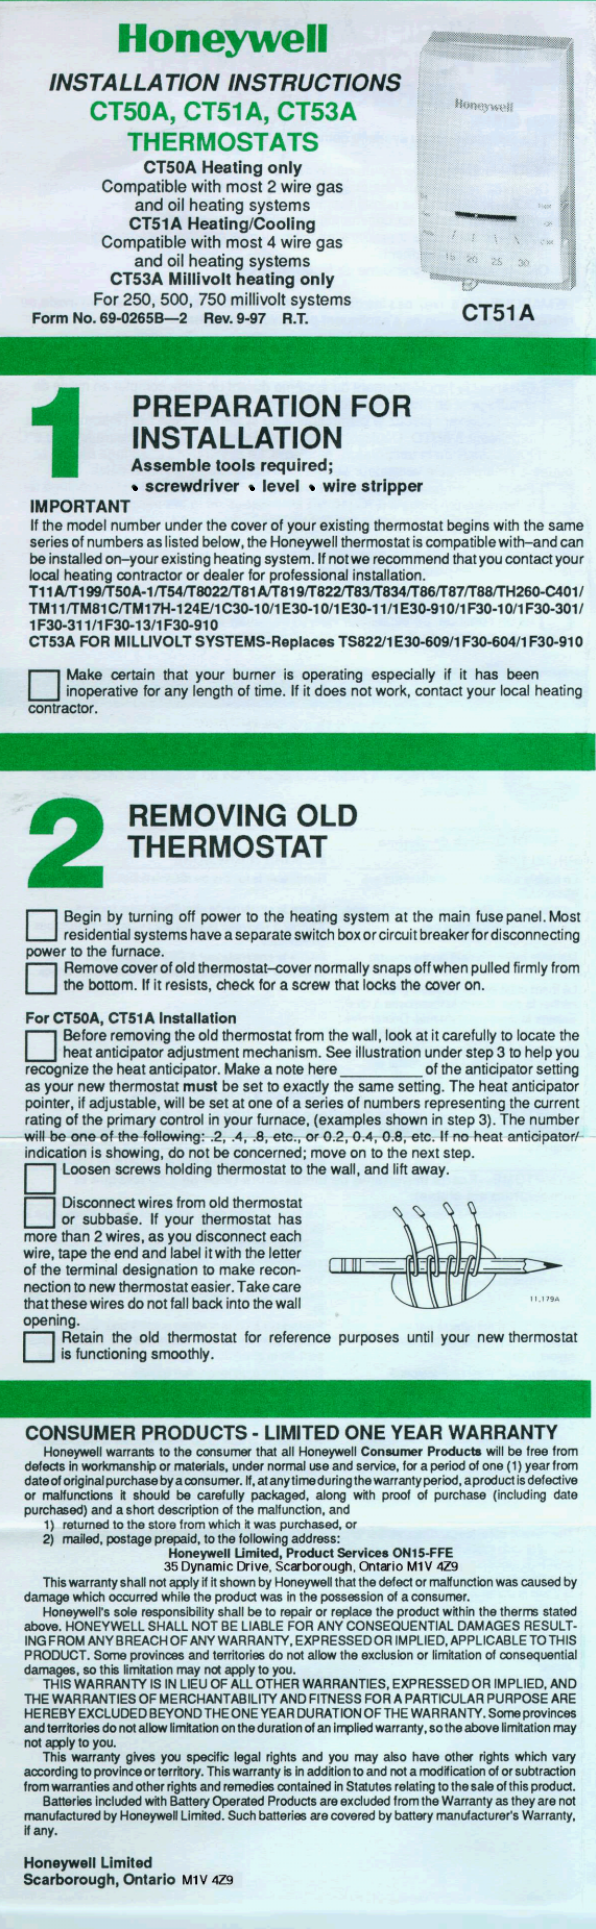 Honeywell Ct50a Installation Instructions 69 0265b Ct51a Snap Circuit 750 Ct53a Thermostats